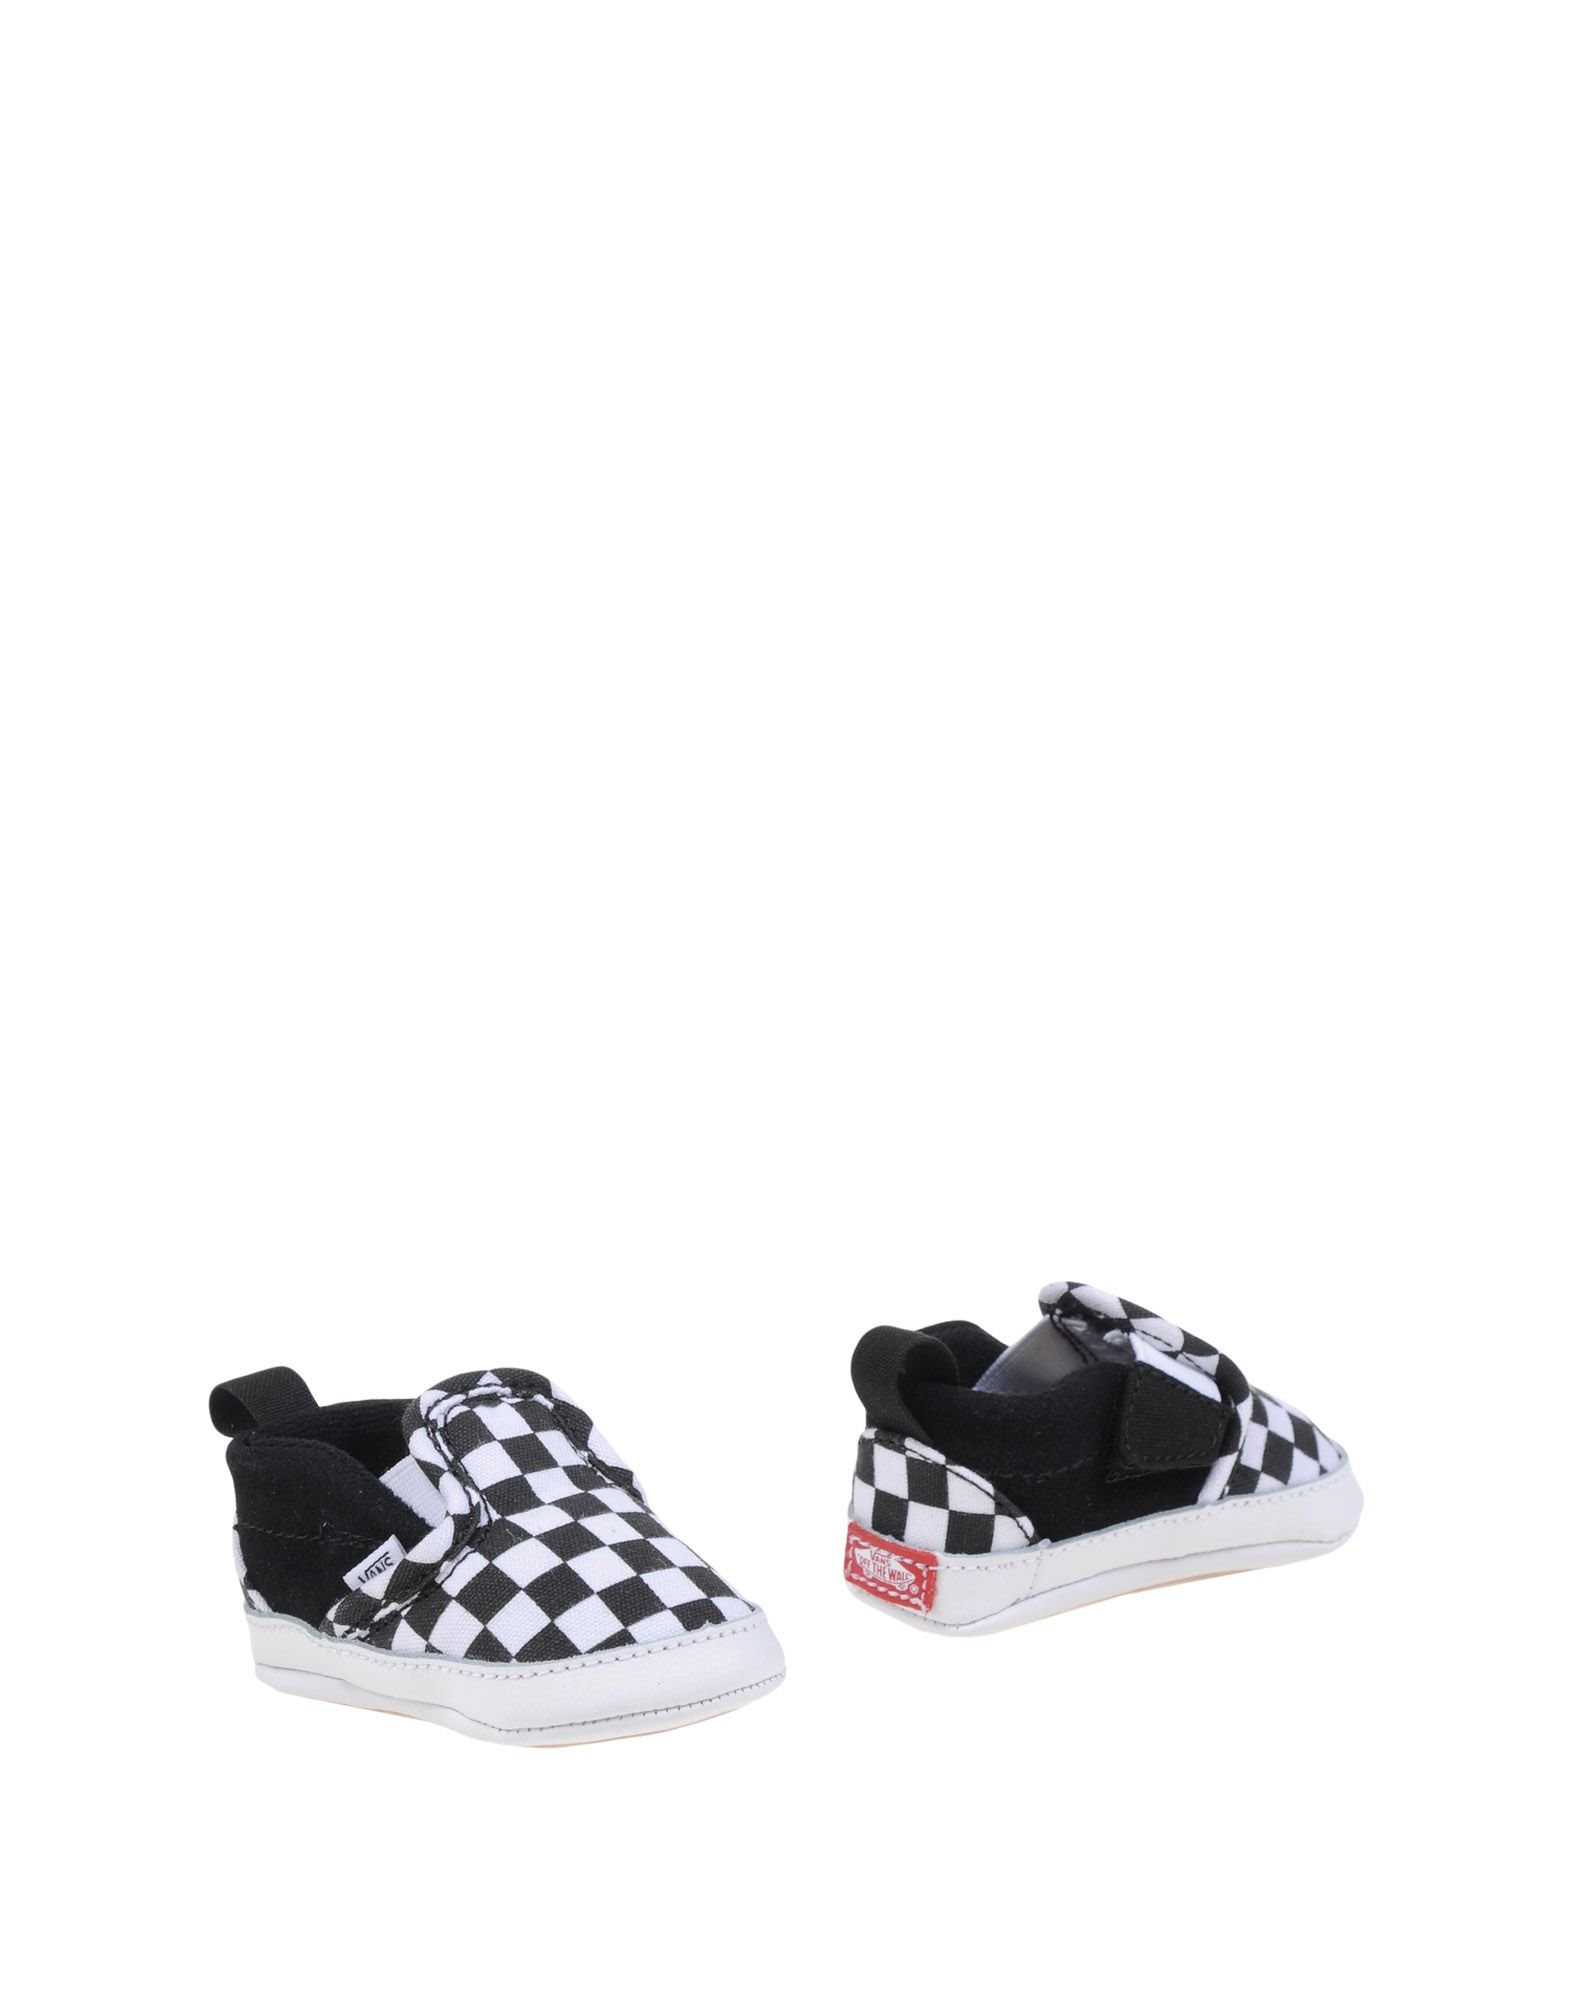 Newborn Shoes Vans Vans Newborn Shoes Girl 24 Months Online On Yoox Switzerland